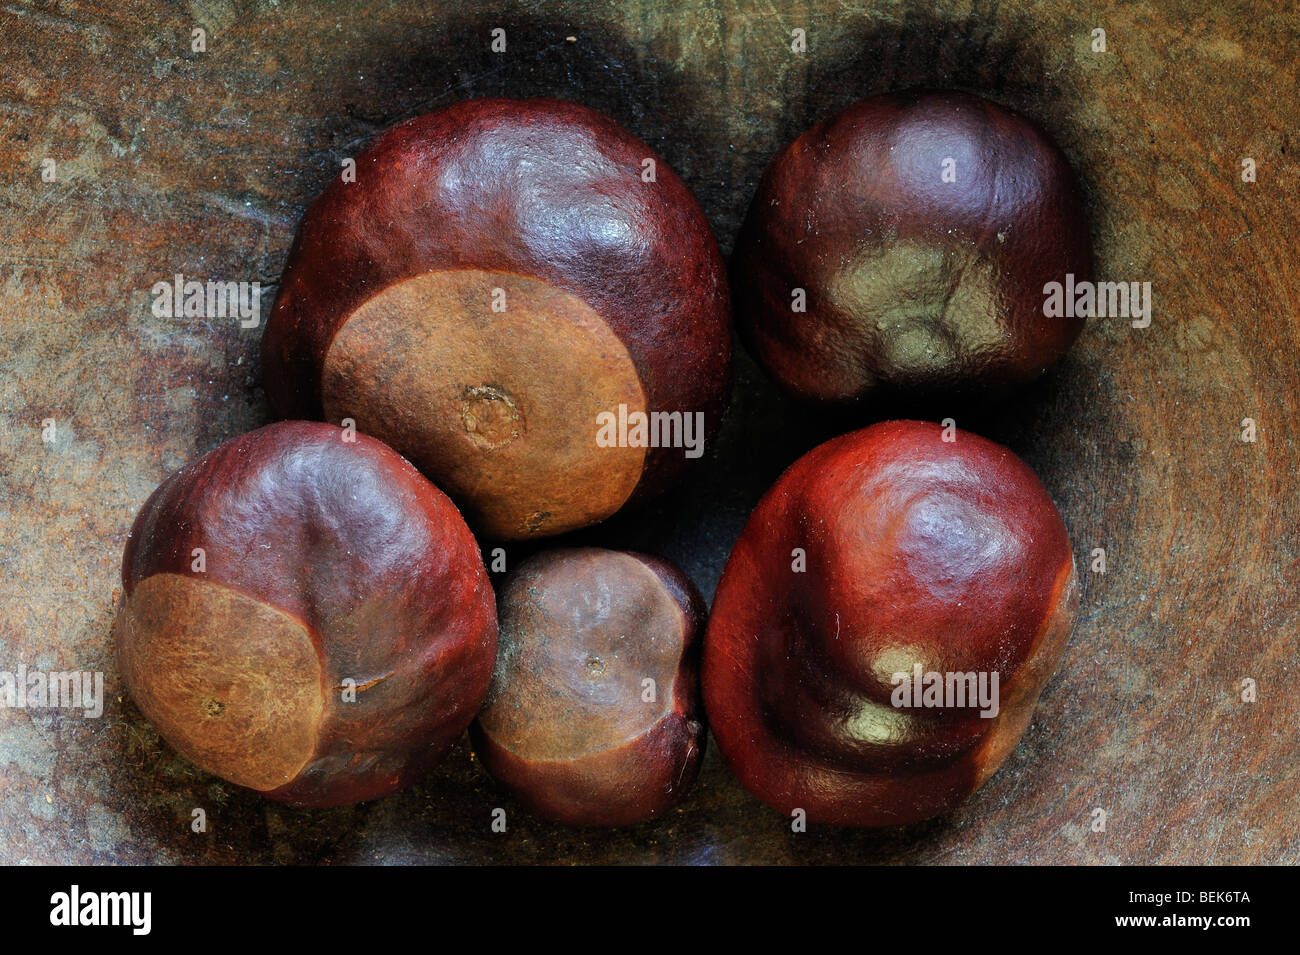 Common Horse-chestnut nuts / conkers (Aesculus hippocastanum) harvested in autumn and displayed in wooden bowl - Stock Image